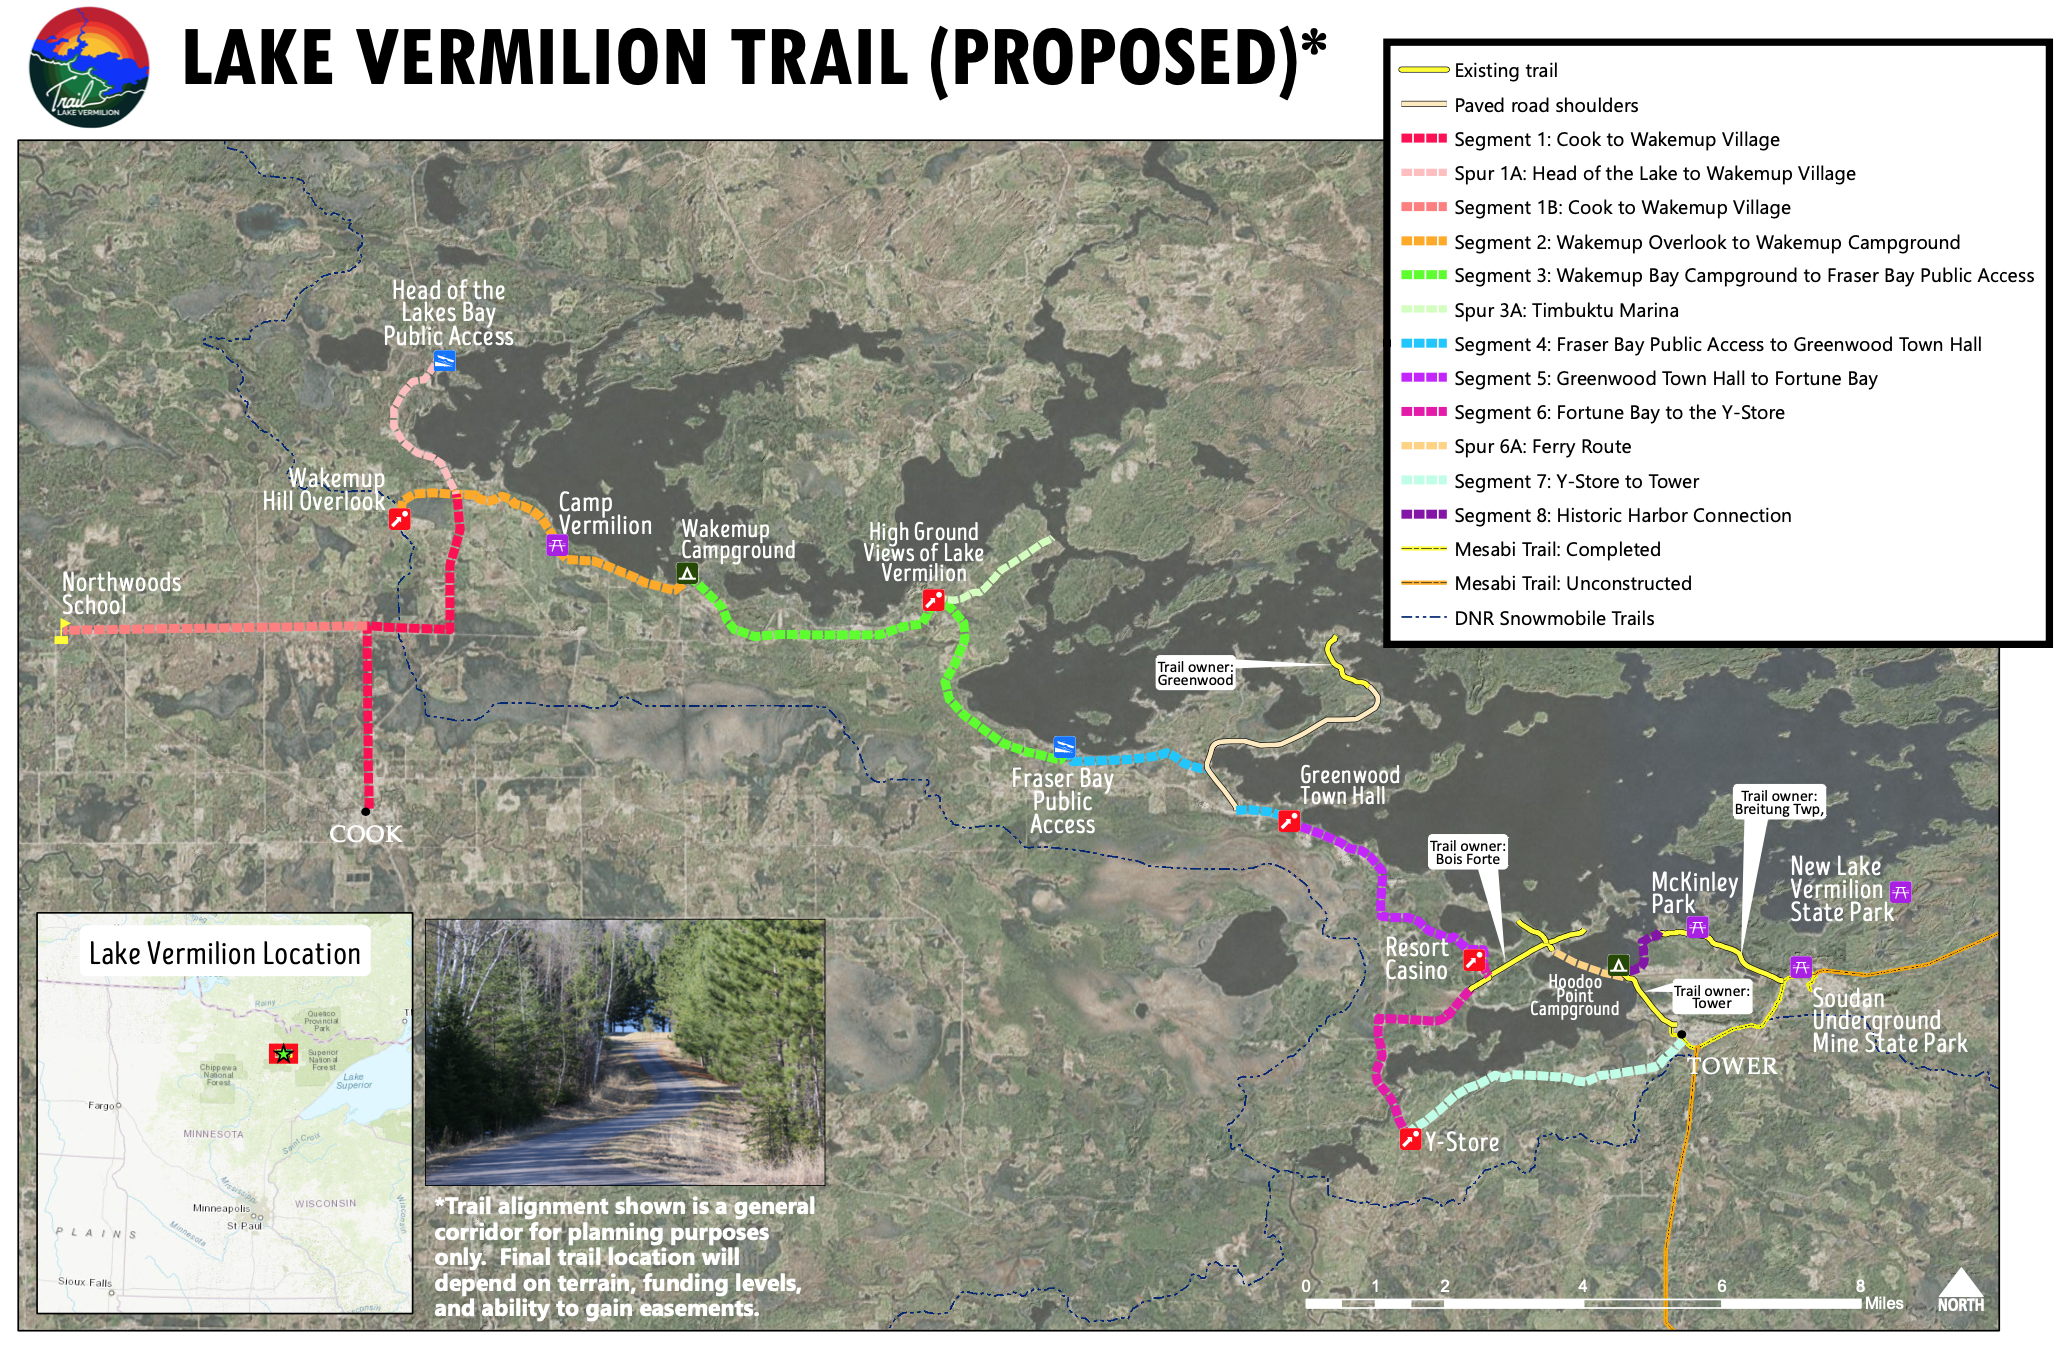 Map of proposed route for Lake Vermilion Trail with segments